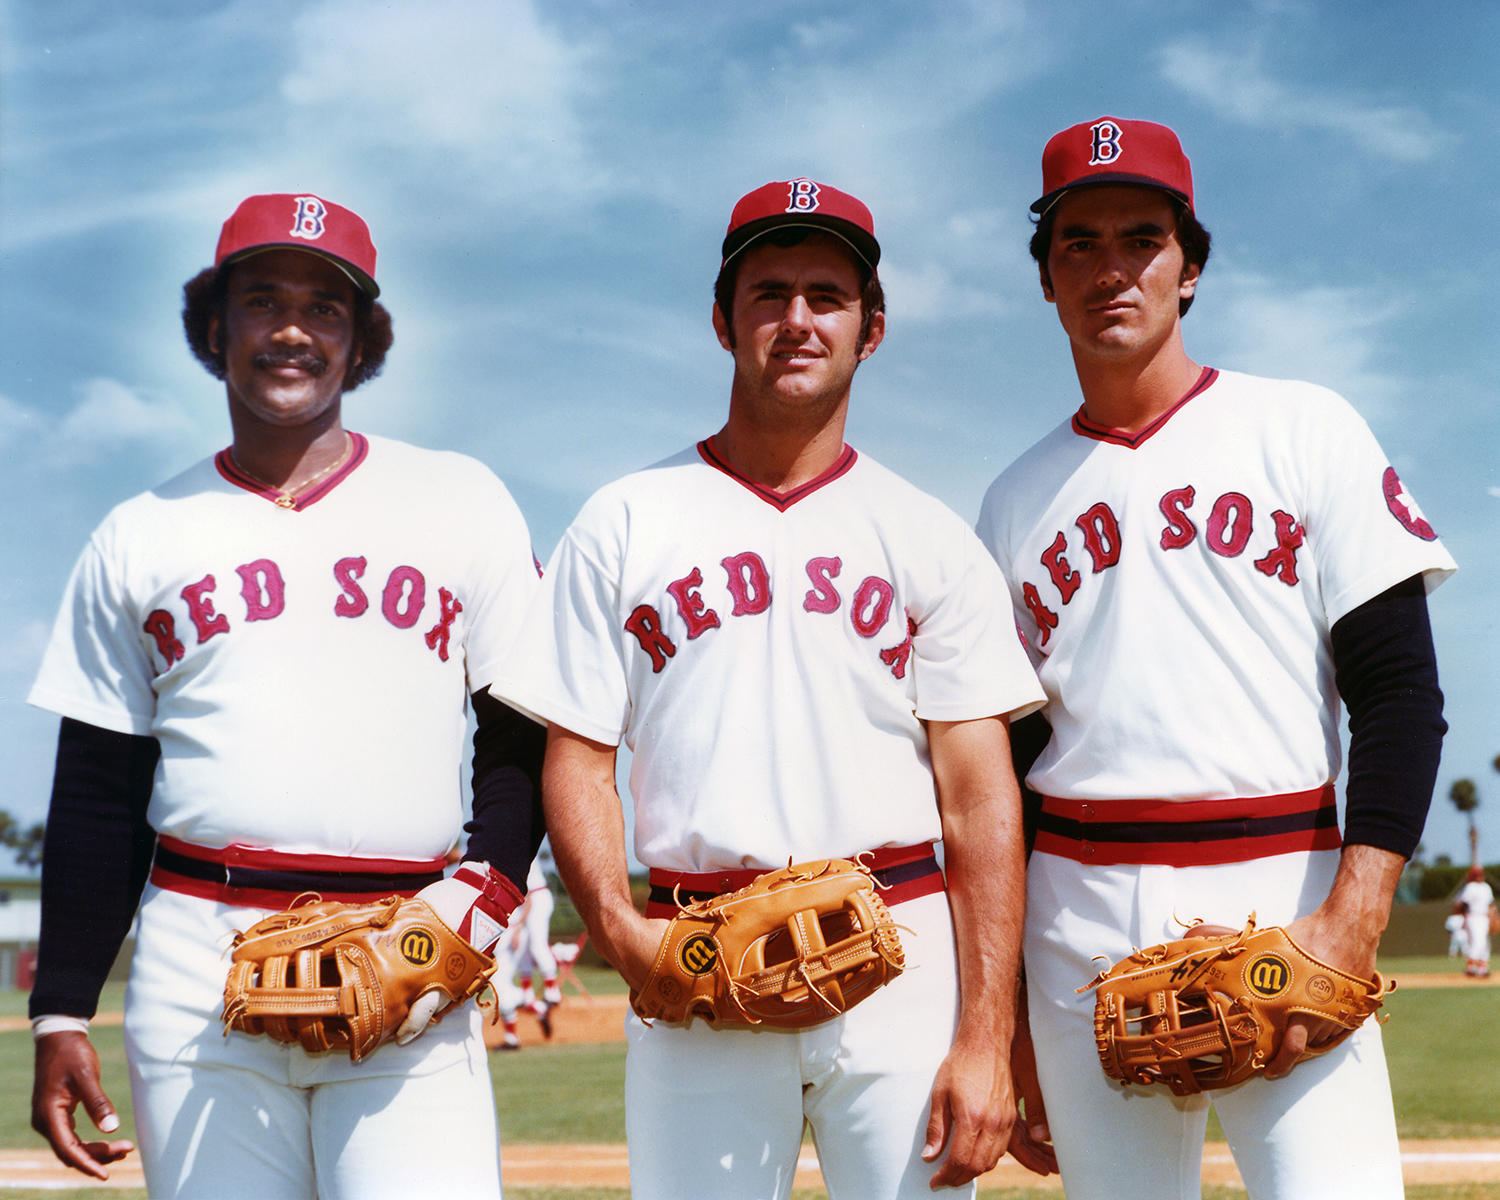 Joined by rookies Jim Rice (left) and Fred Lynn (center), Dwight Evans helped form one of the best outfields in the major leagues in 1975. (Photo courtesy of Boston Red Sox)